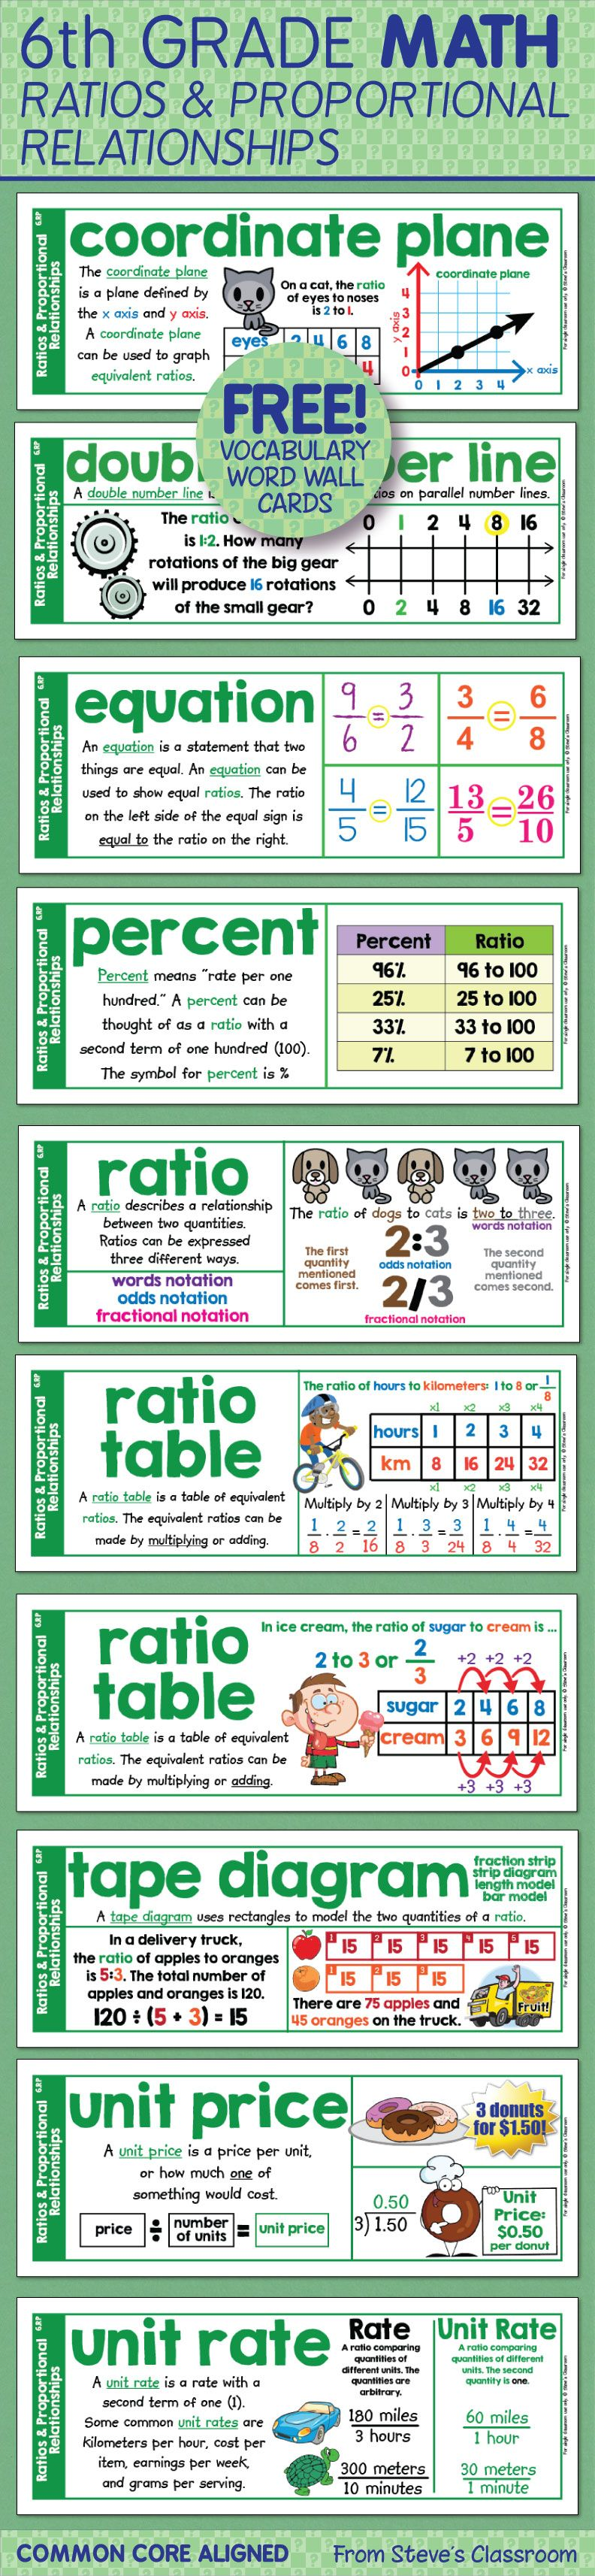 Free! Word wall cards for sixth grade math ratios and proportional ...